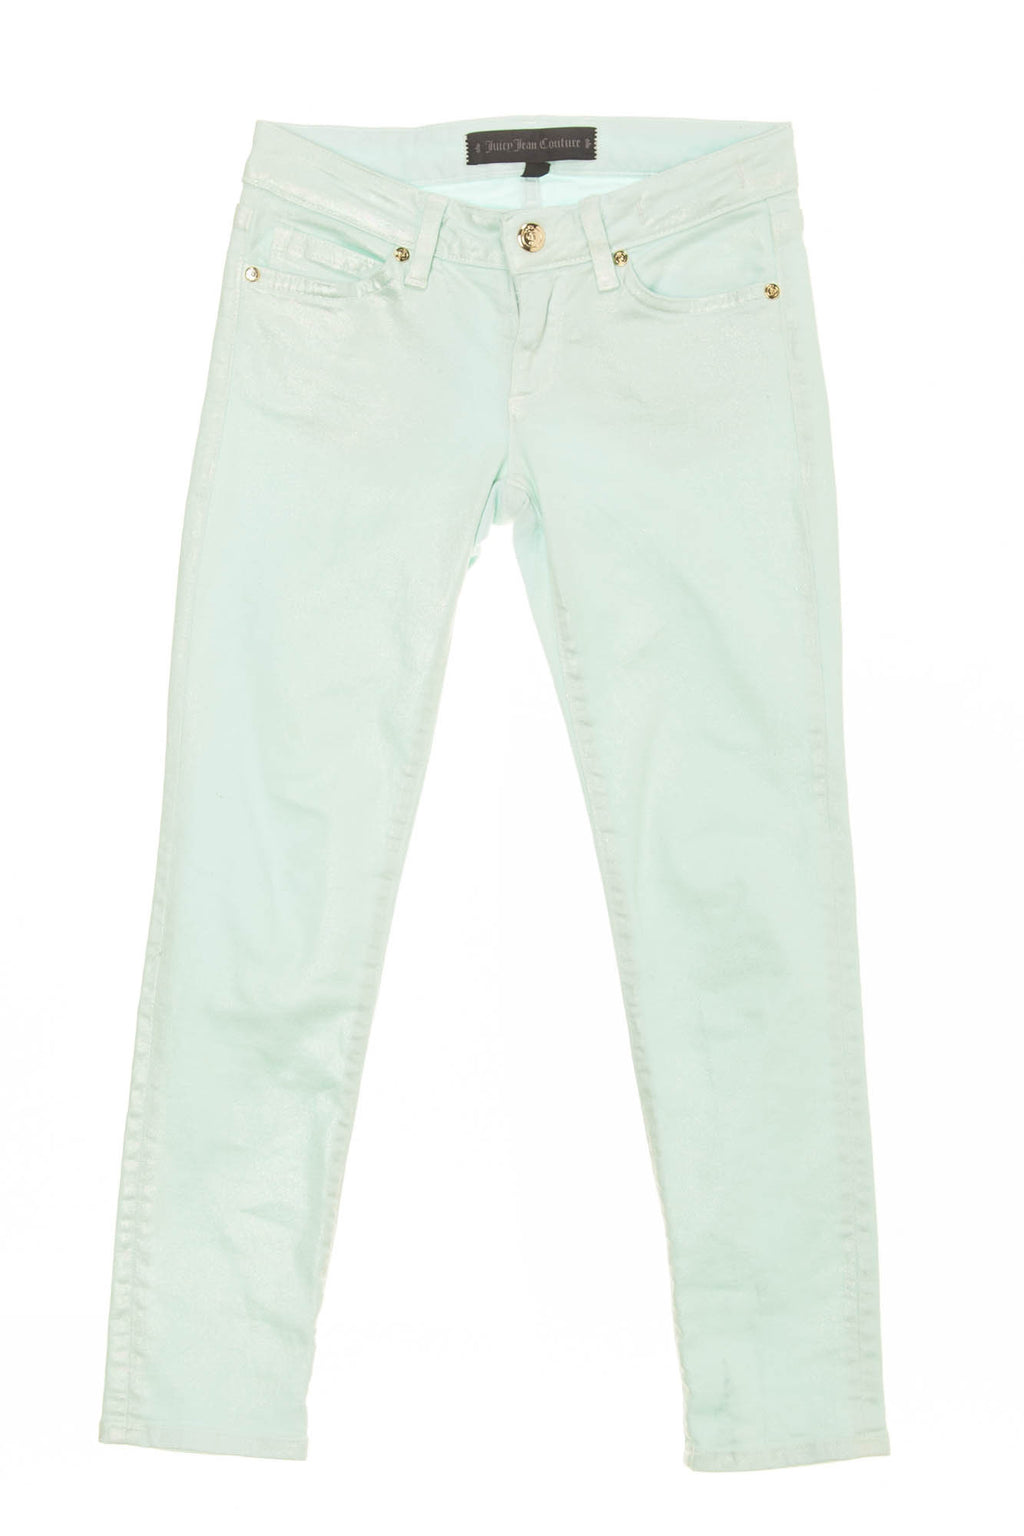 Juicy Jean Couture - Sea Foam Green Skinny Jeans - 6 Skinny